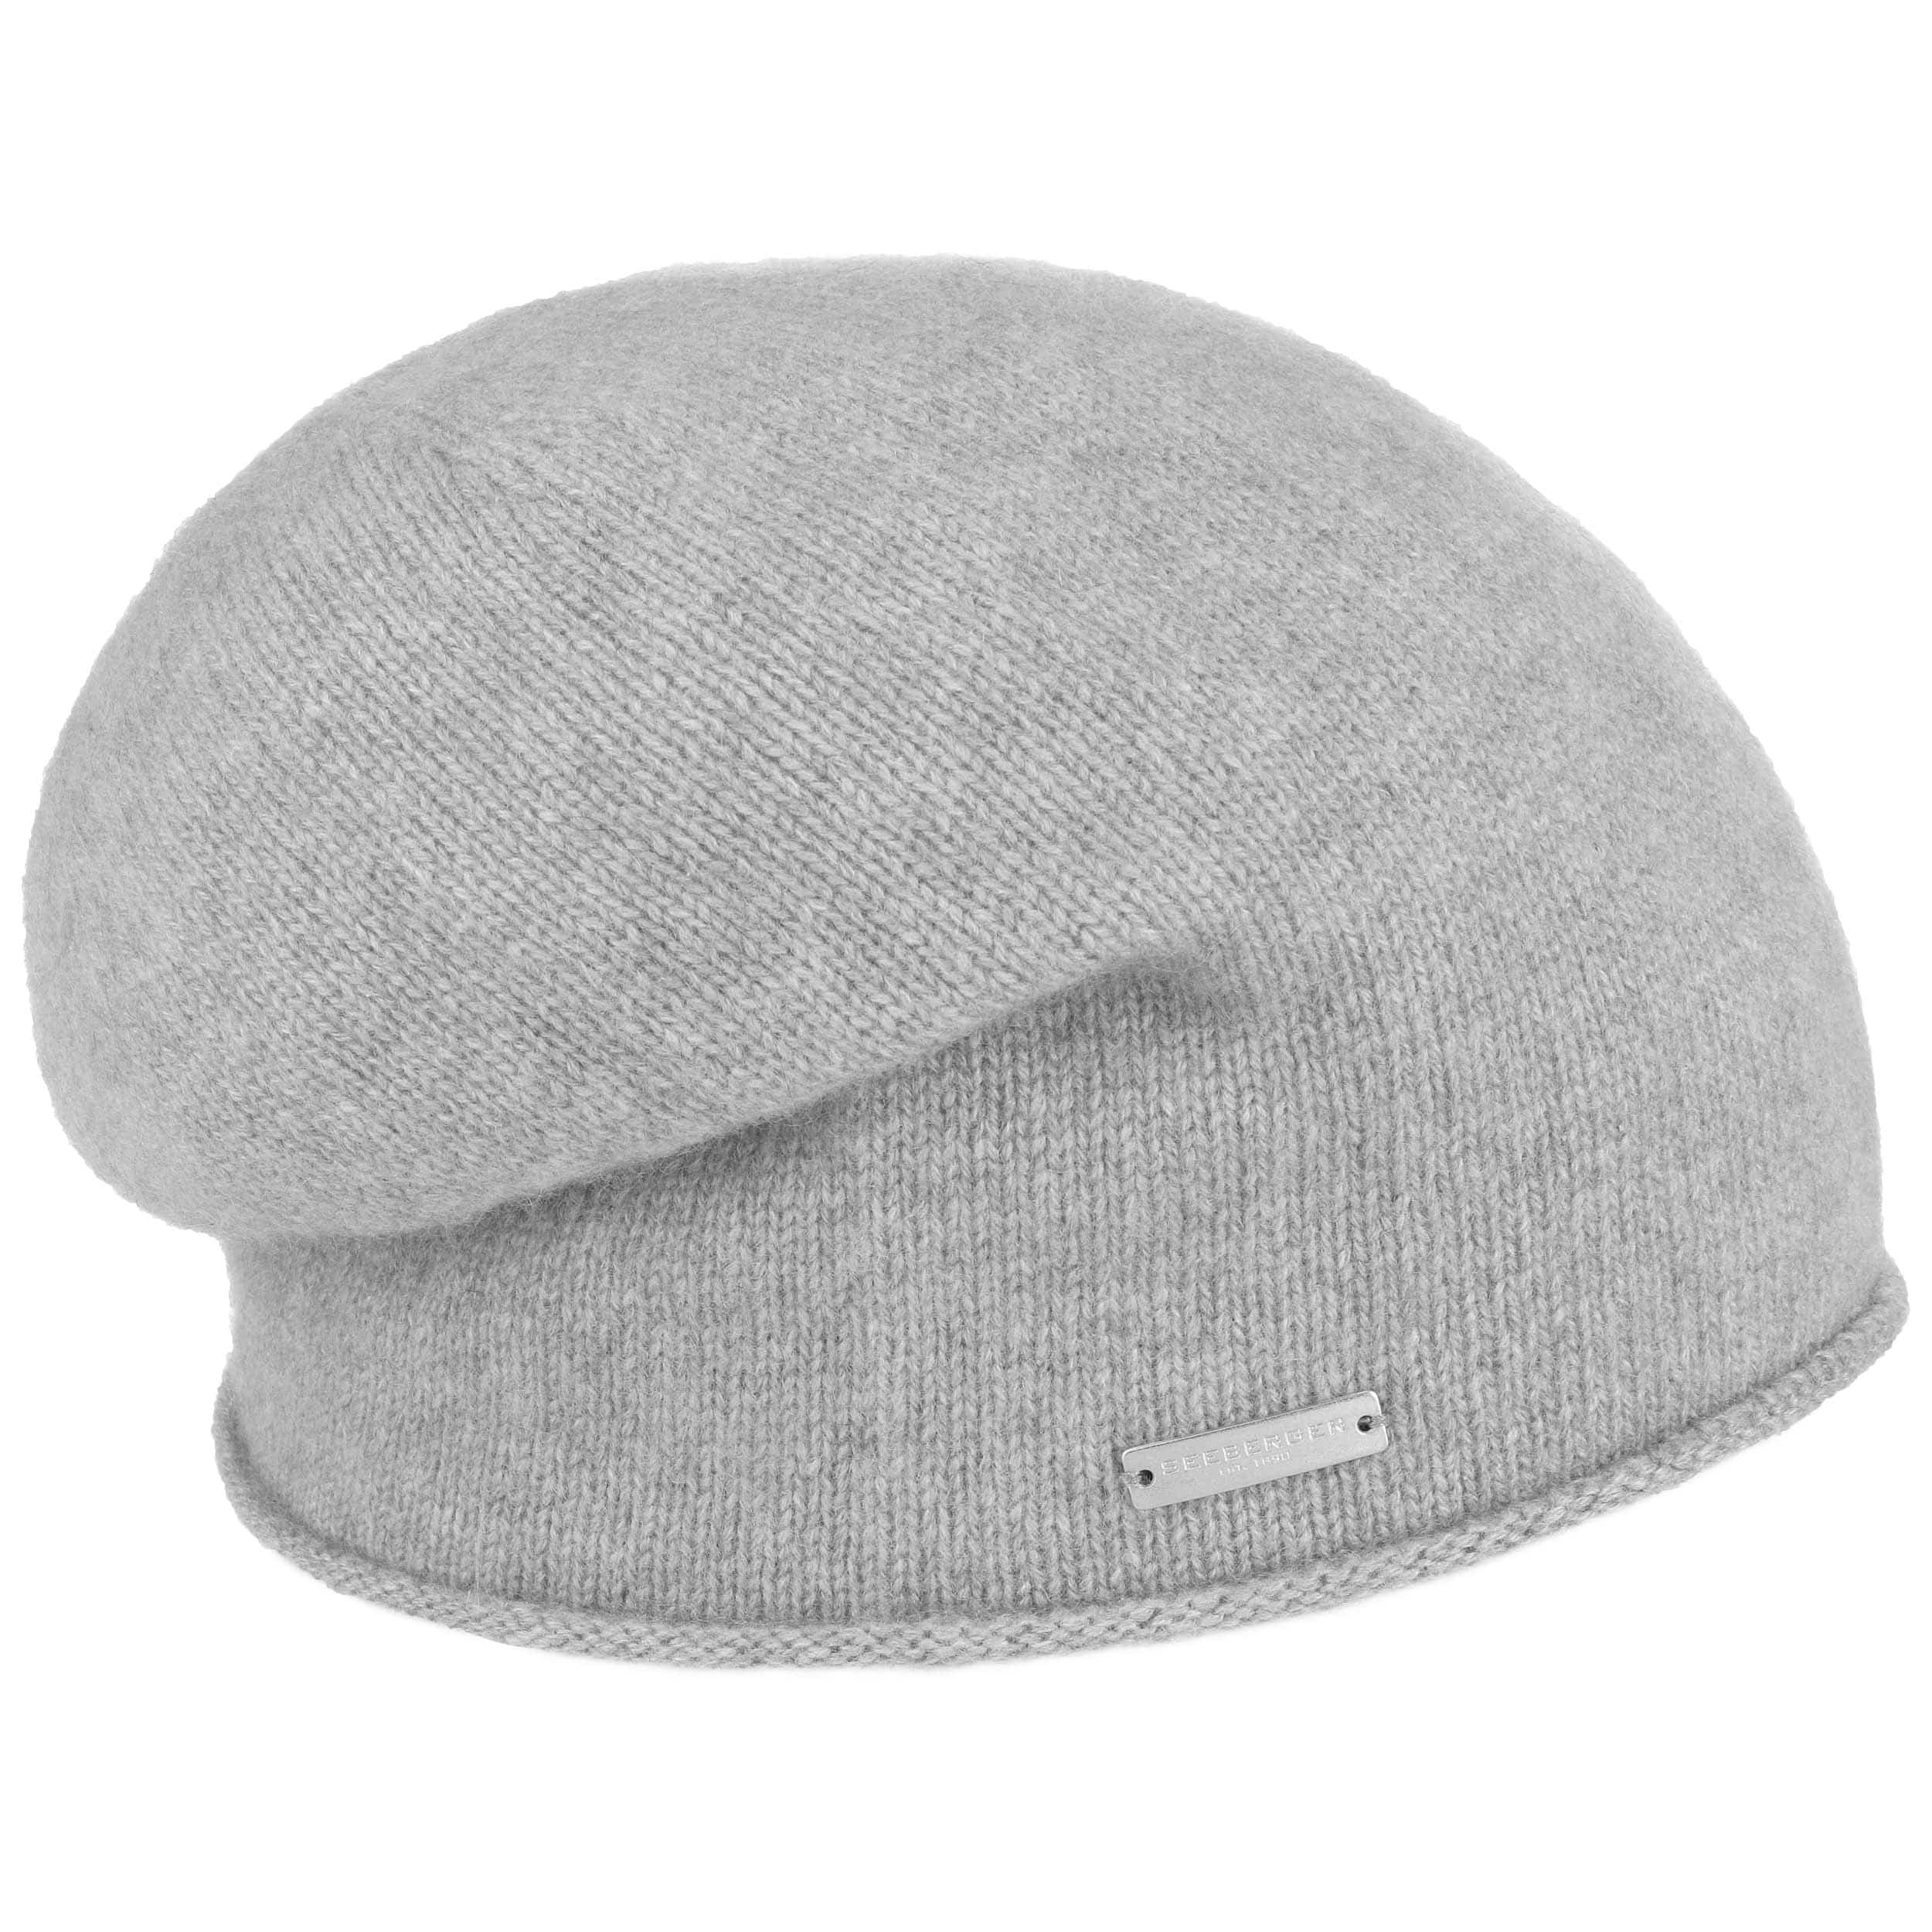 3551e97c52c ... Rolled Edge Cashmere Beanie by Seeberger - light grey 3 ...